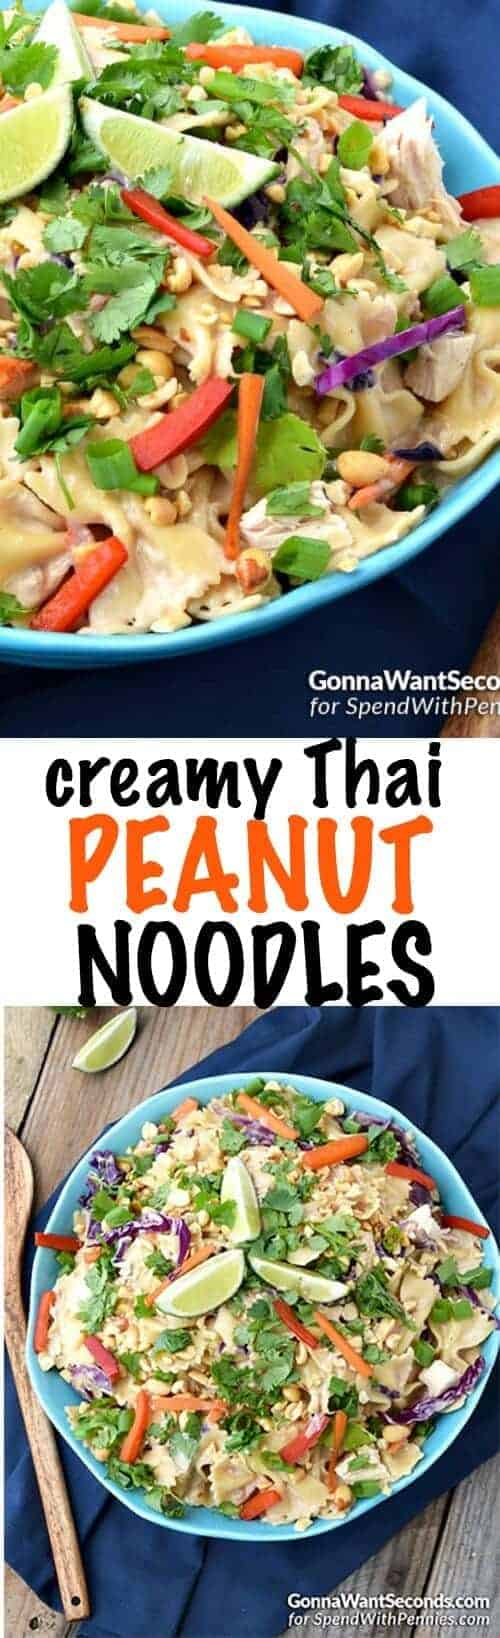 Creamy Peanut Thai Noodles is one dish our whole family agrees on! This easy pasta dish is smothered in a Thai-flavored peanut butter cream sauce and loaded with chicken, red peppers, carrots & green onions for a great family meal.